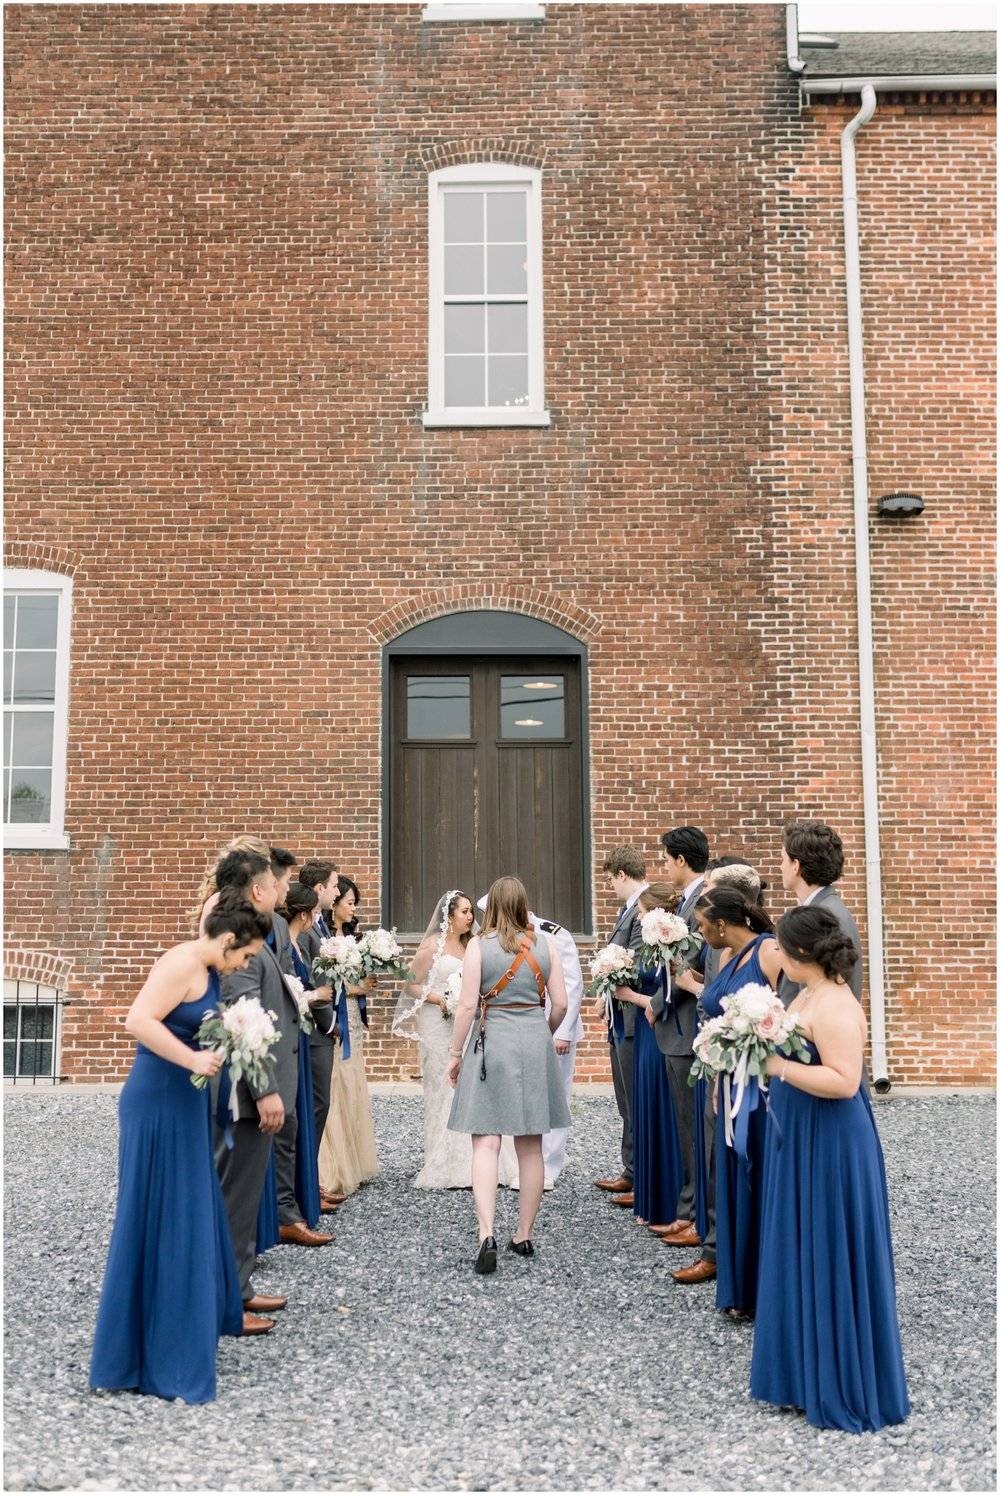 Krista Brackin Photography Behind The Scenes 2018 - Krista Brackin Photography_0006.jpg